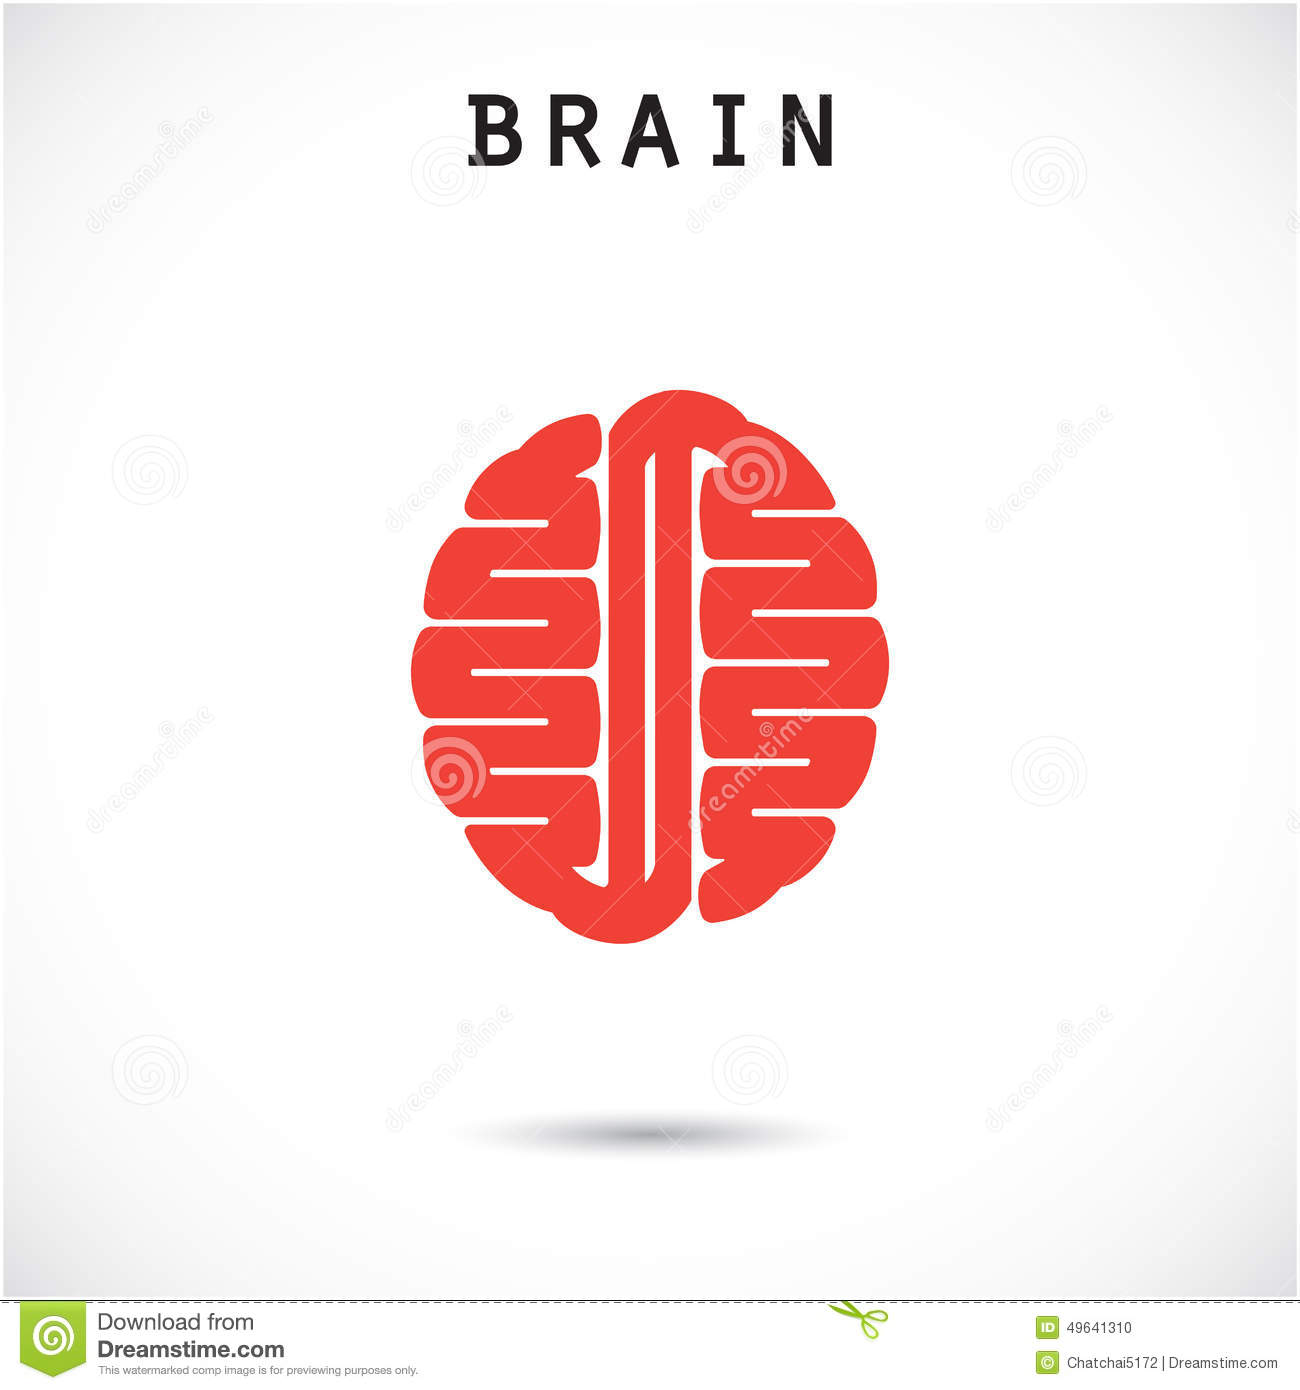 brain vector logo - photo #41